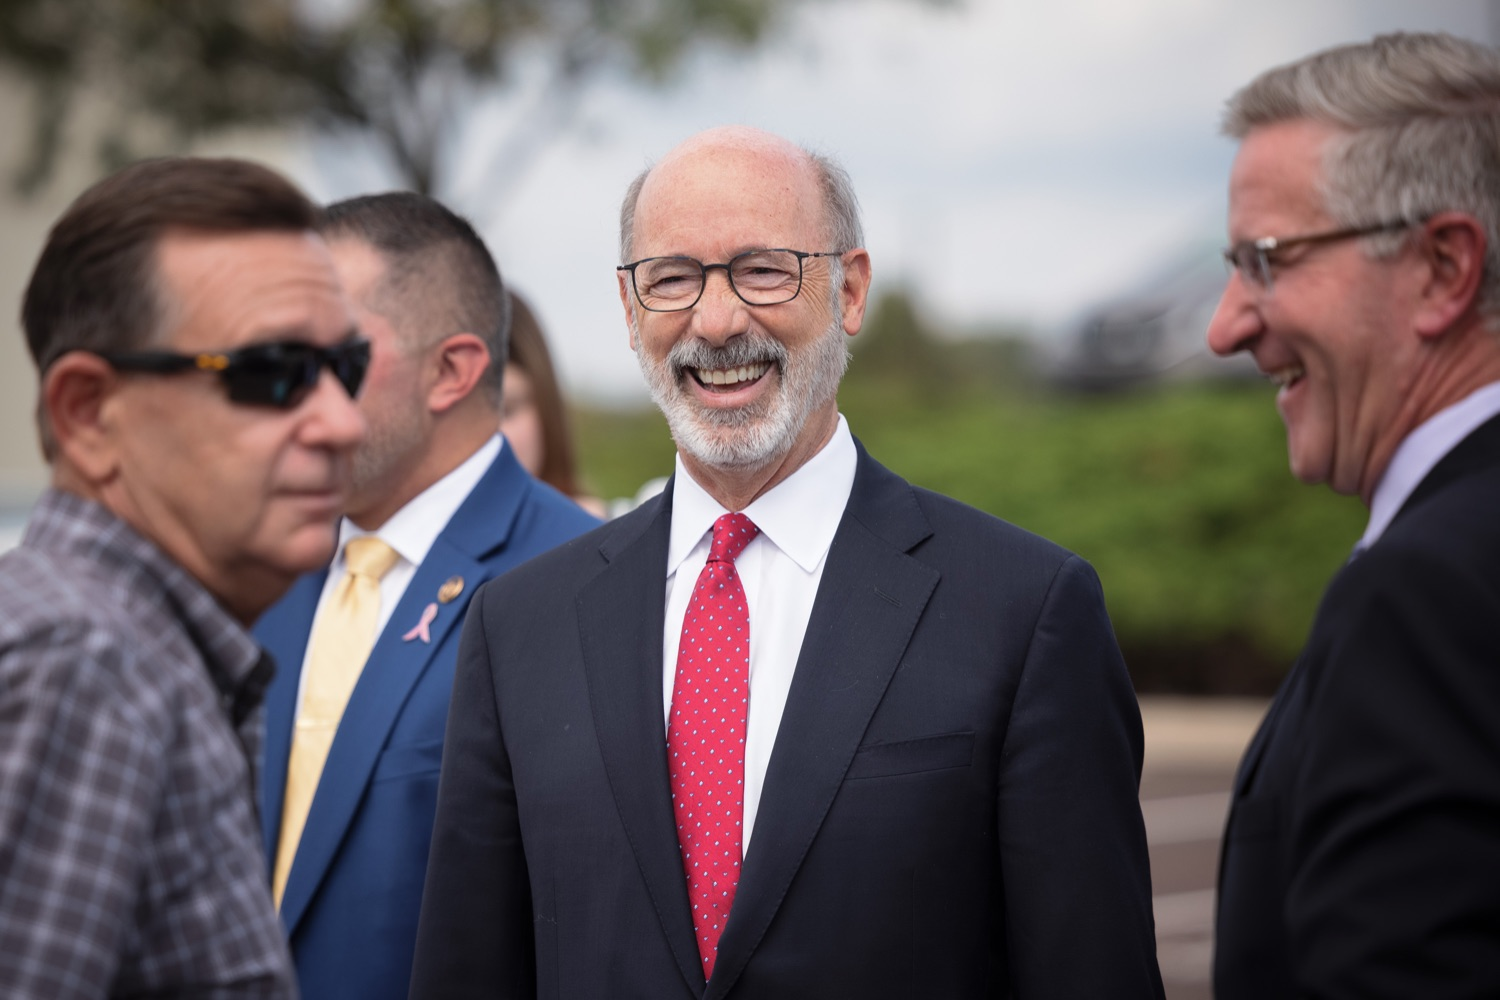 """<a href=""""https://filesource.wostreaming.net/commonwealthofpa/photo/20126_gov_economicDevelopment_dz_013.jpg"""" target=""""_blank"""">⇣Download Photo<br></a>Pennsylvania Governor Tom Wolf tours the site.  Governor Tom Wolf joined Clemens Food Group leaders, Agriculture Secretary Russell Redding, Sen. Maria Collett, Rep. Steve Malagari and members of the Governors Action Team today to tour the construction of the companys new facility in Montgomery County. The Wolf Administration supported the project which will expand the business operations and create new jobs in the region. Hatfield, PA   October 8, 2021"""